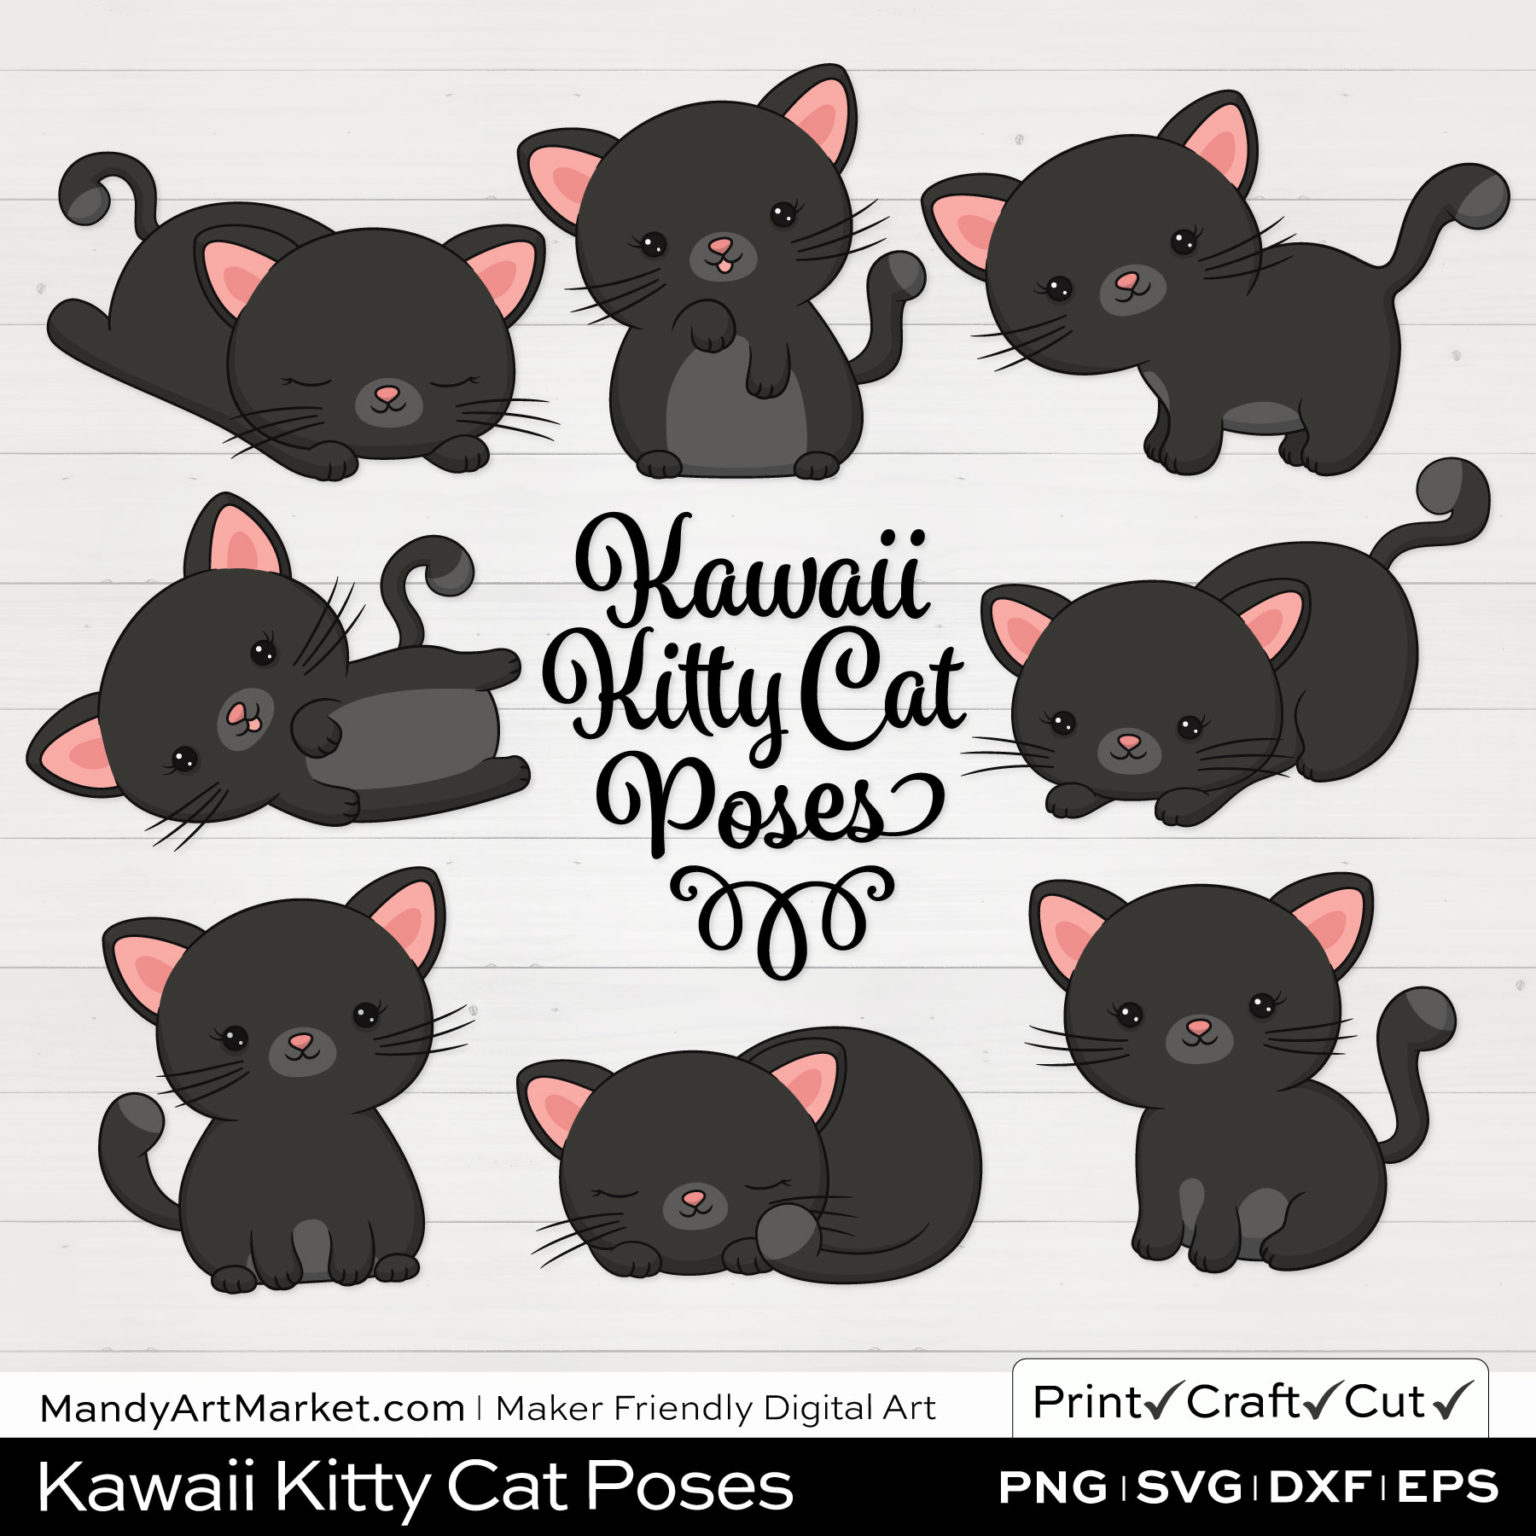 Midnight Gray Kawaii Kitty Cat Poses Clipart on White Background